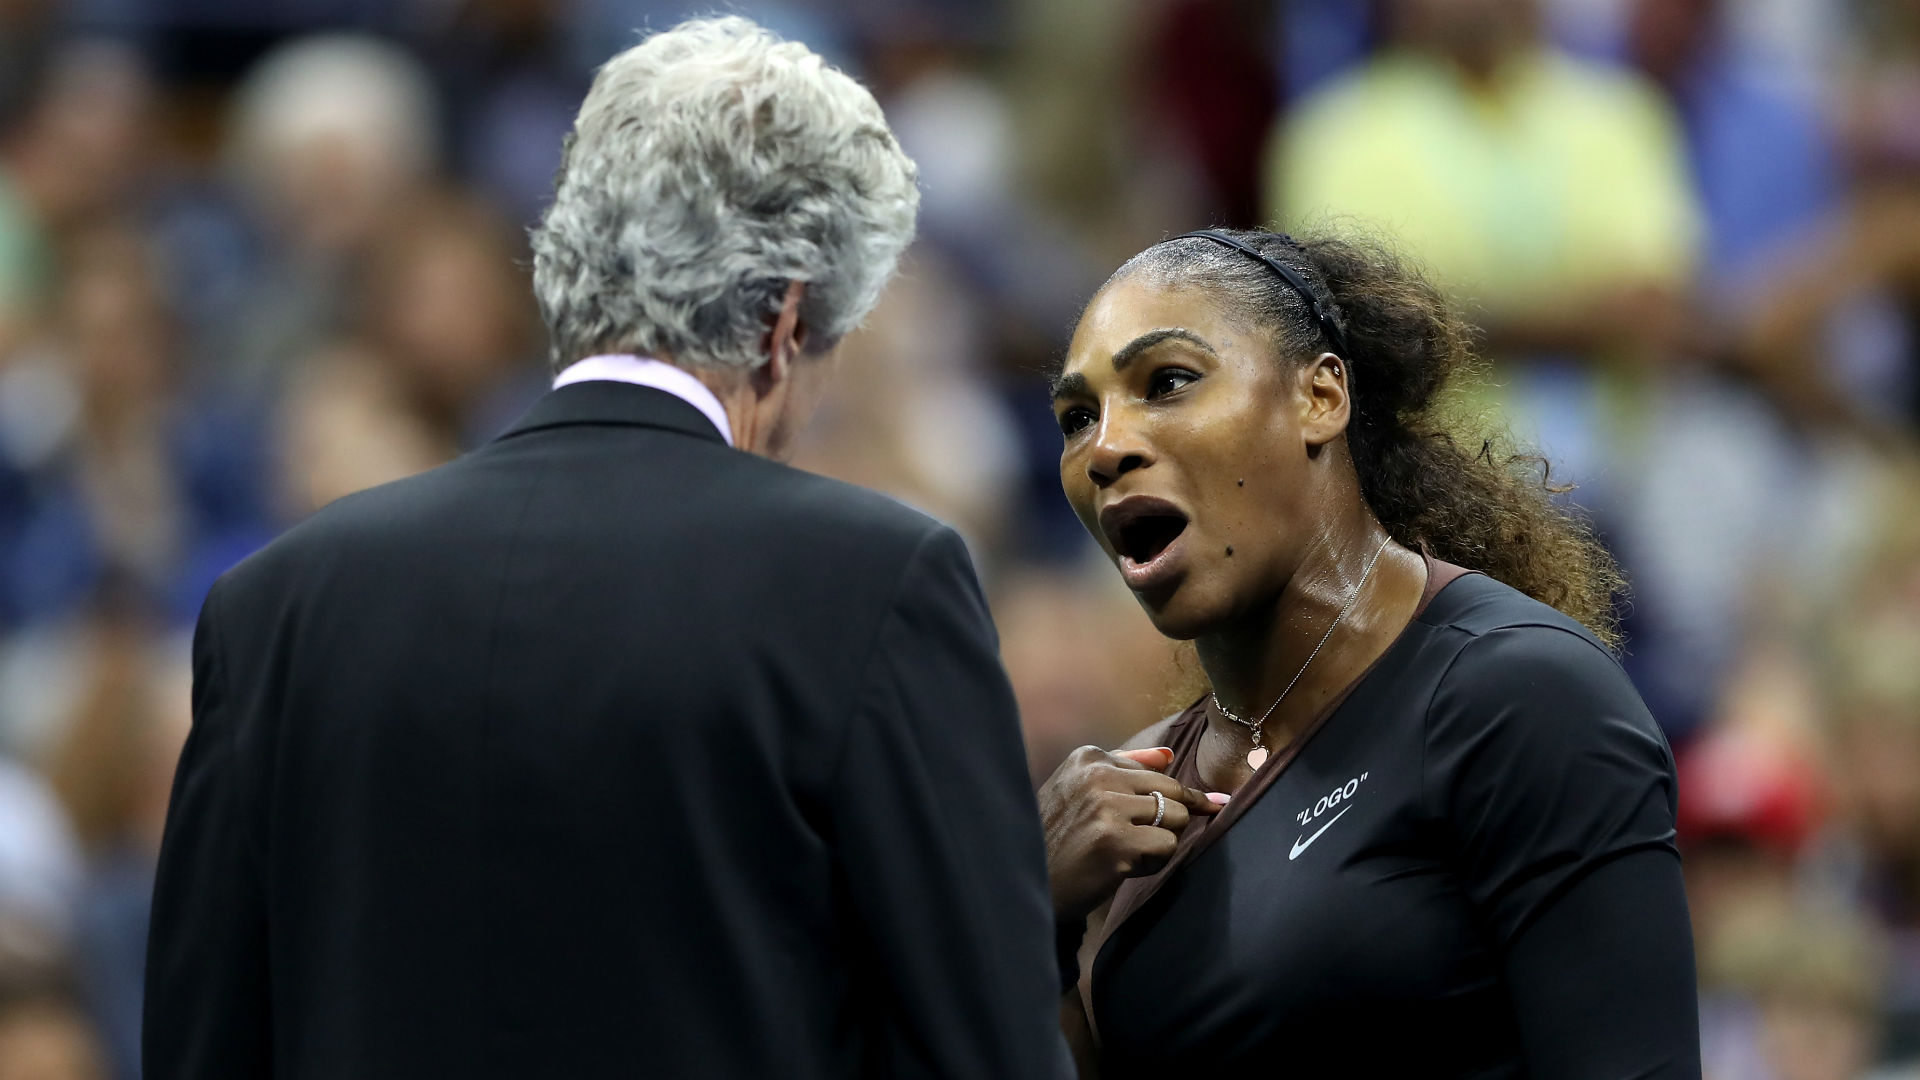 Steph Curry on Serena Williams: 'You're going to have reactions